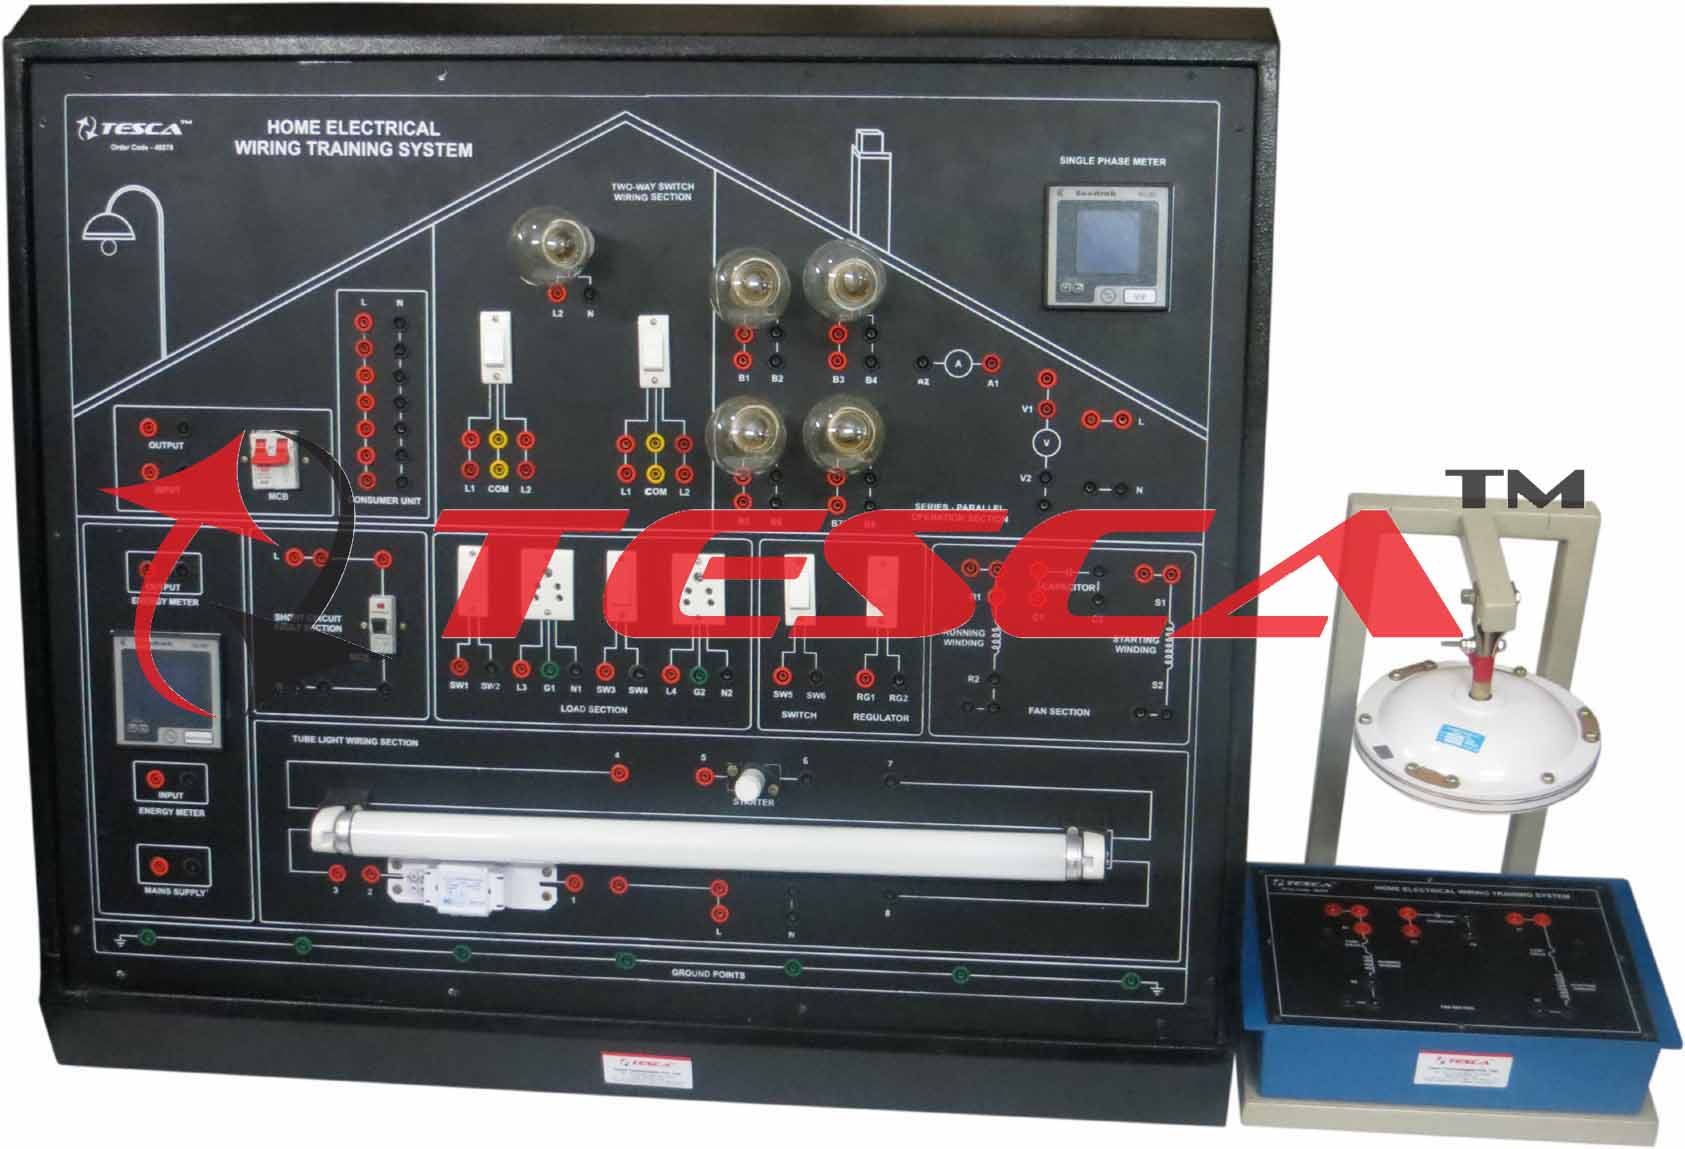 Home Electrical Wiring Training System 1878 3875